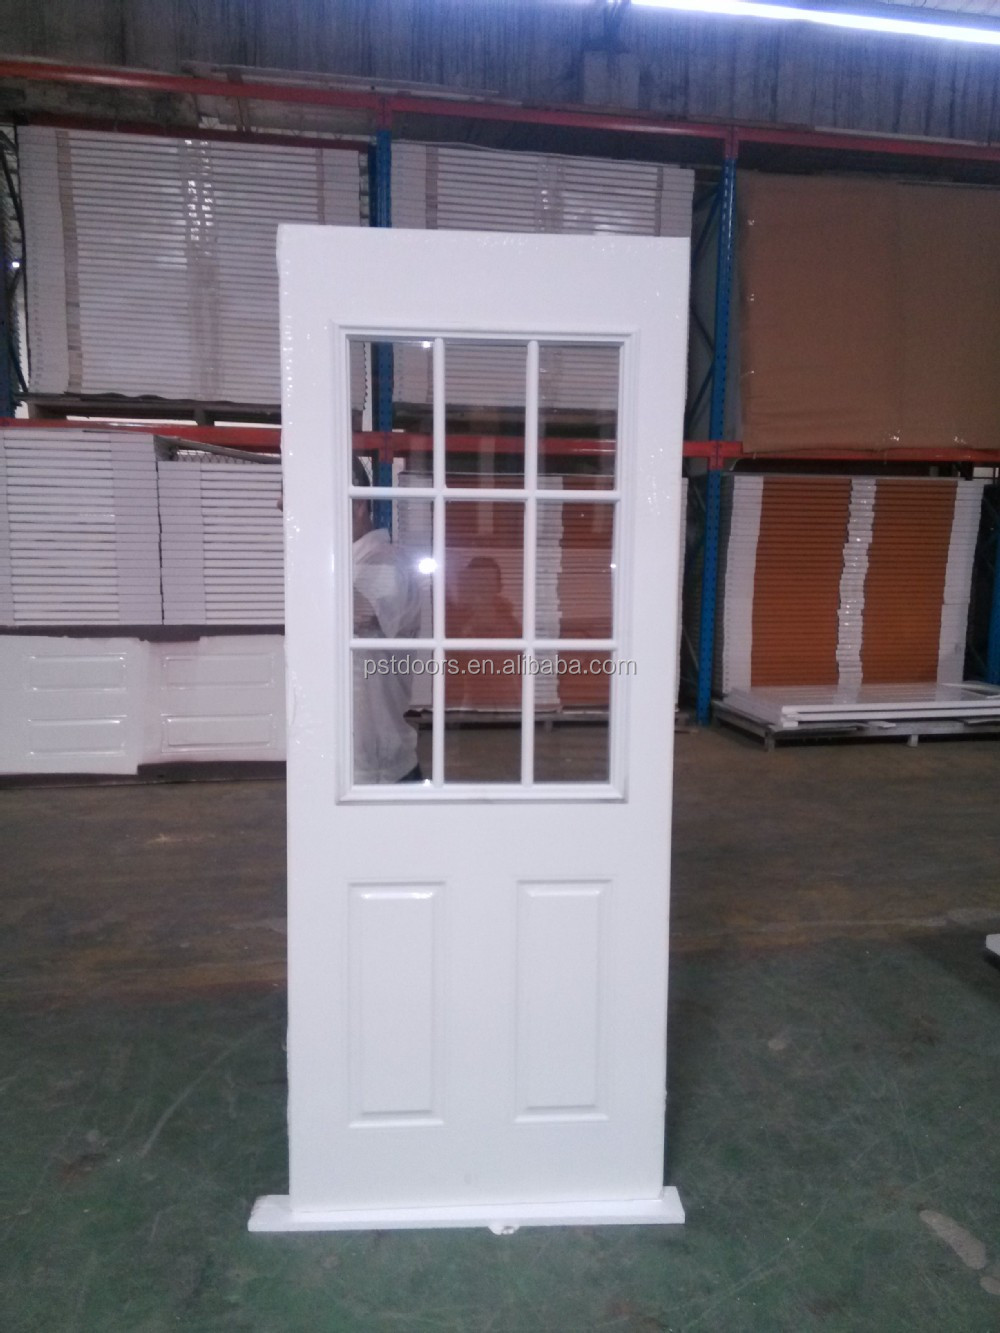 Steel Door for Interior Use American Style with Knock Down Steel Door Frame made in Guangdong